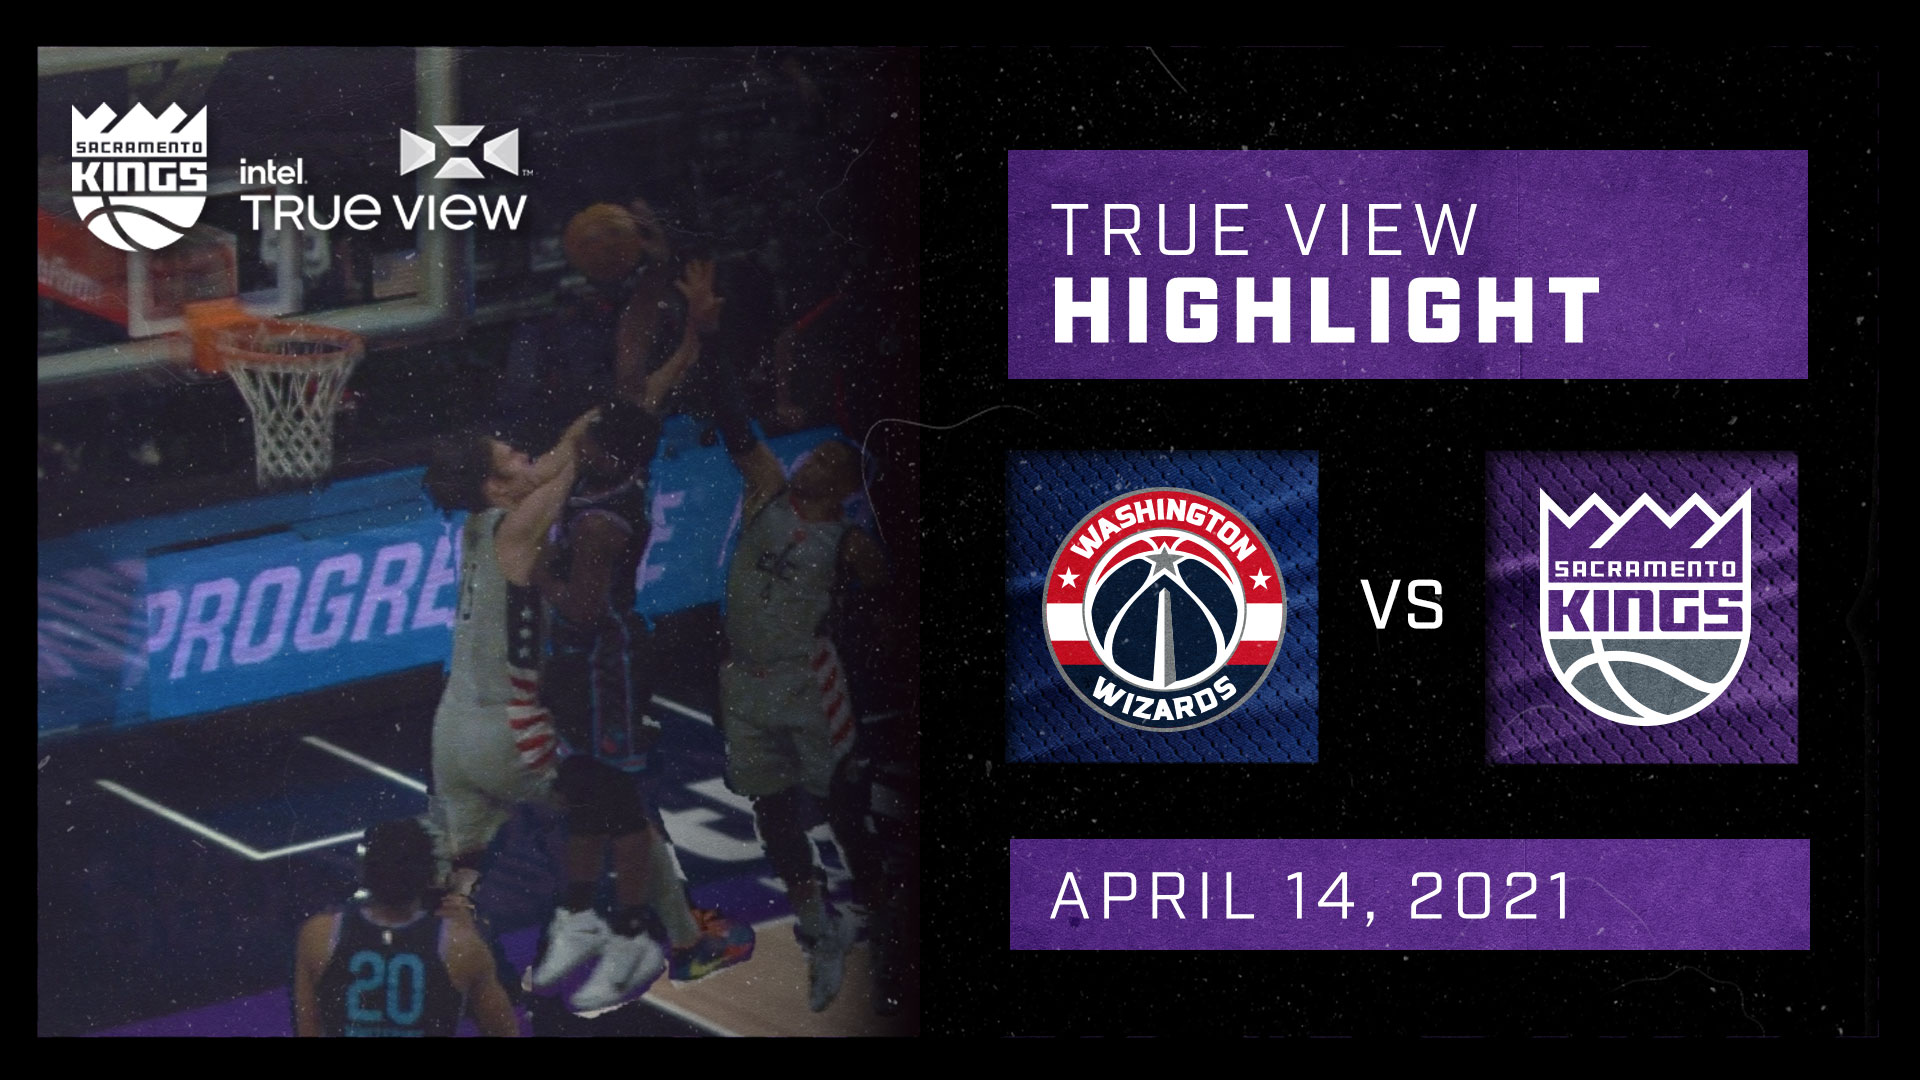 Intel True View Highlight - Davis Dunk vs Wizards 4.14.21